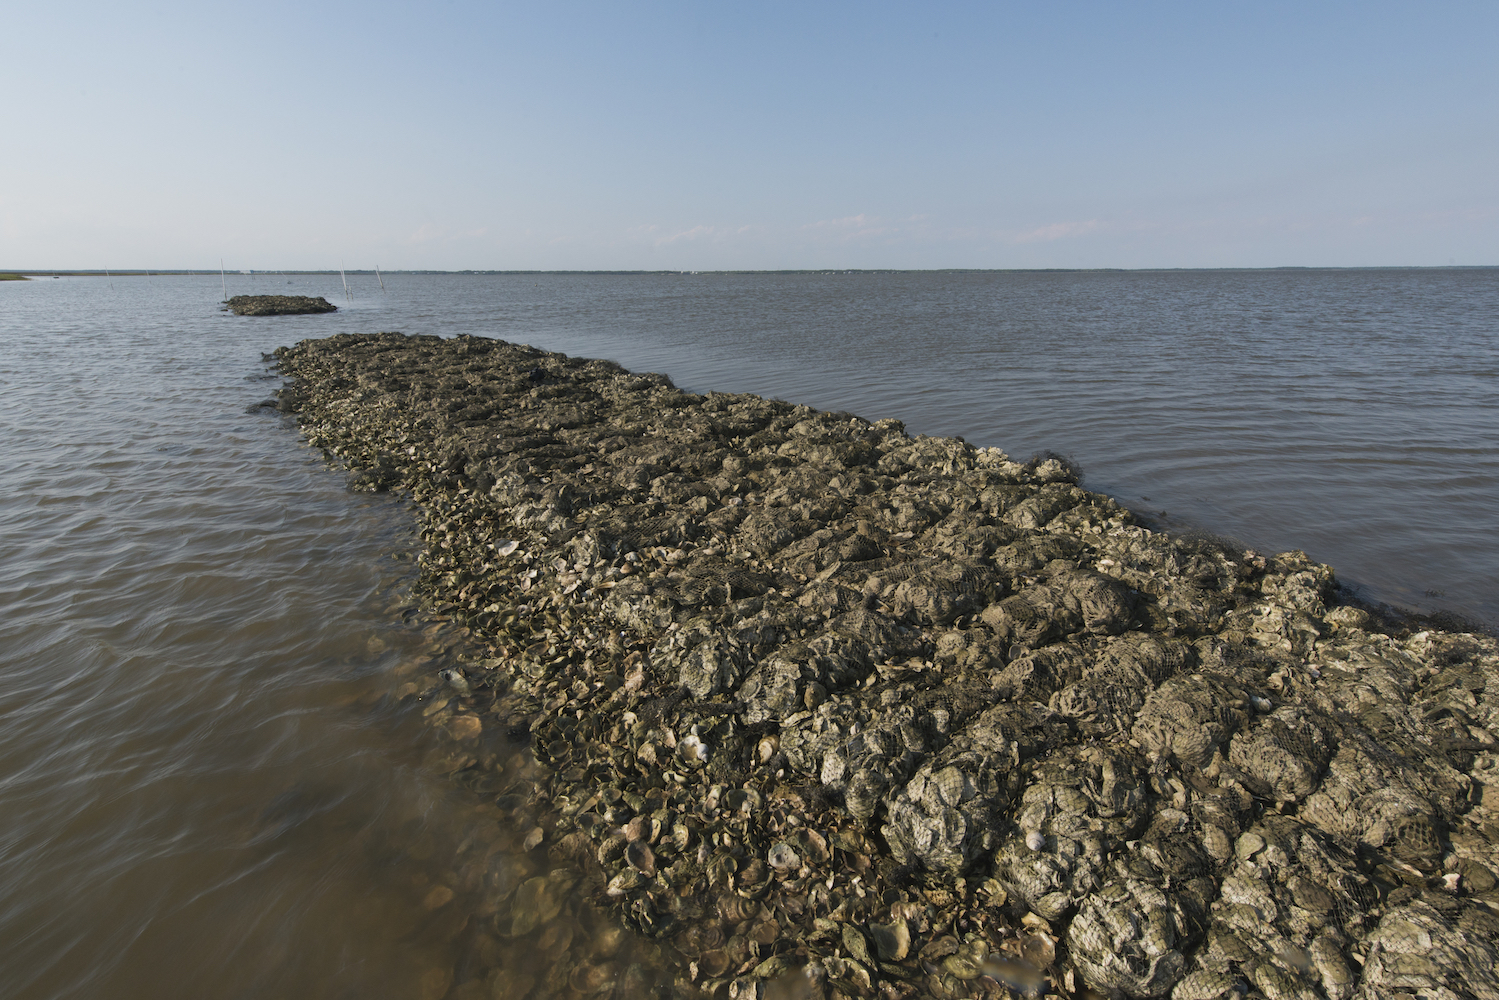 As climate change increases the risk of flooding along the Gulf Coast, researchers have found that oyster reef and marsh restoration projects could cost effectively reduce this risk.